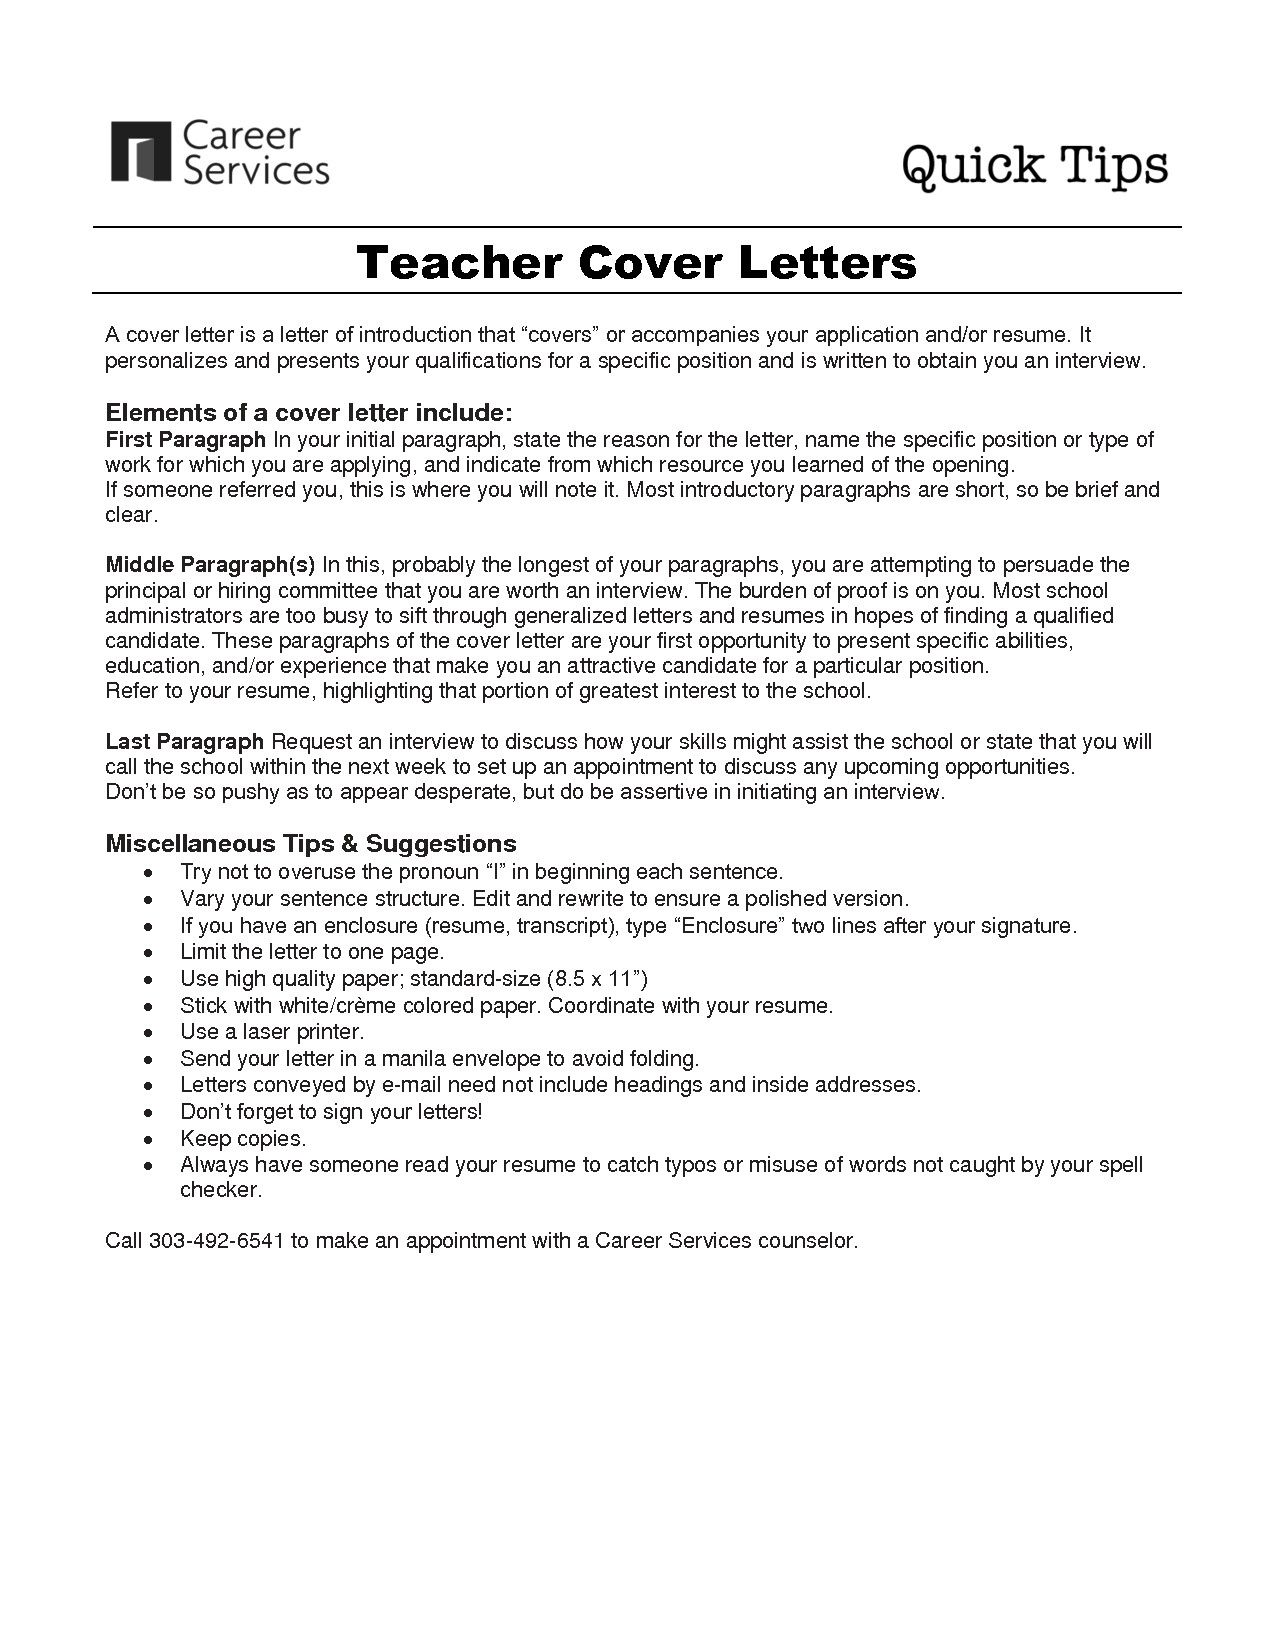 Elementary School Teacher Cover Letter Samples With Images